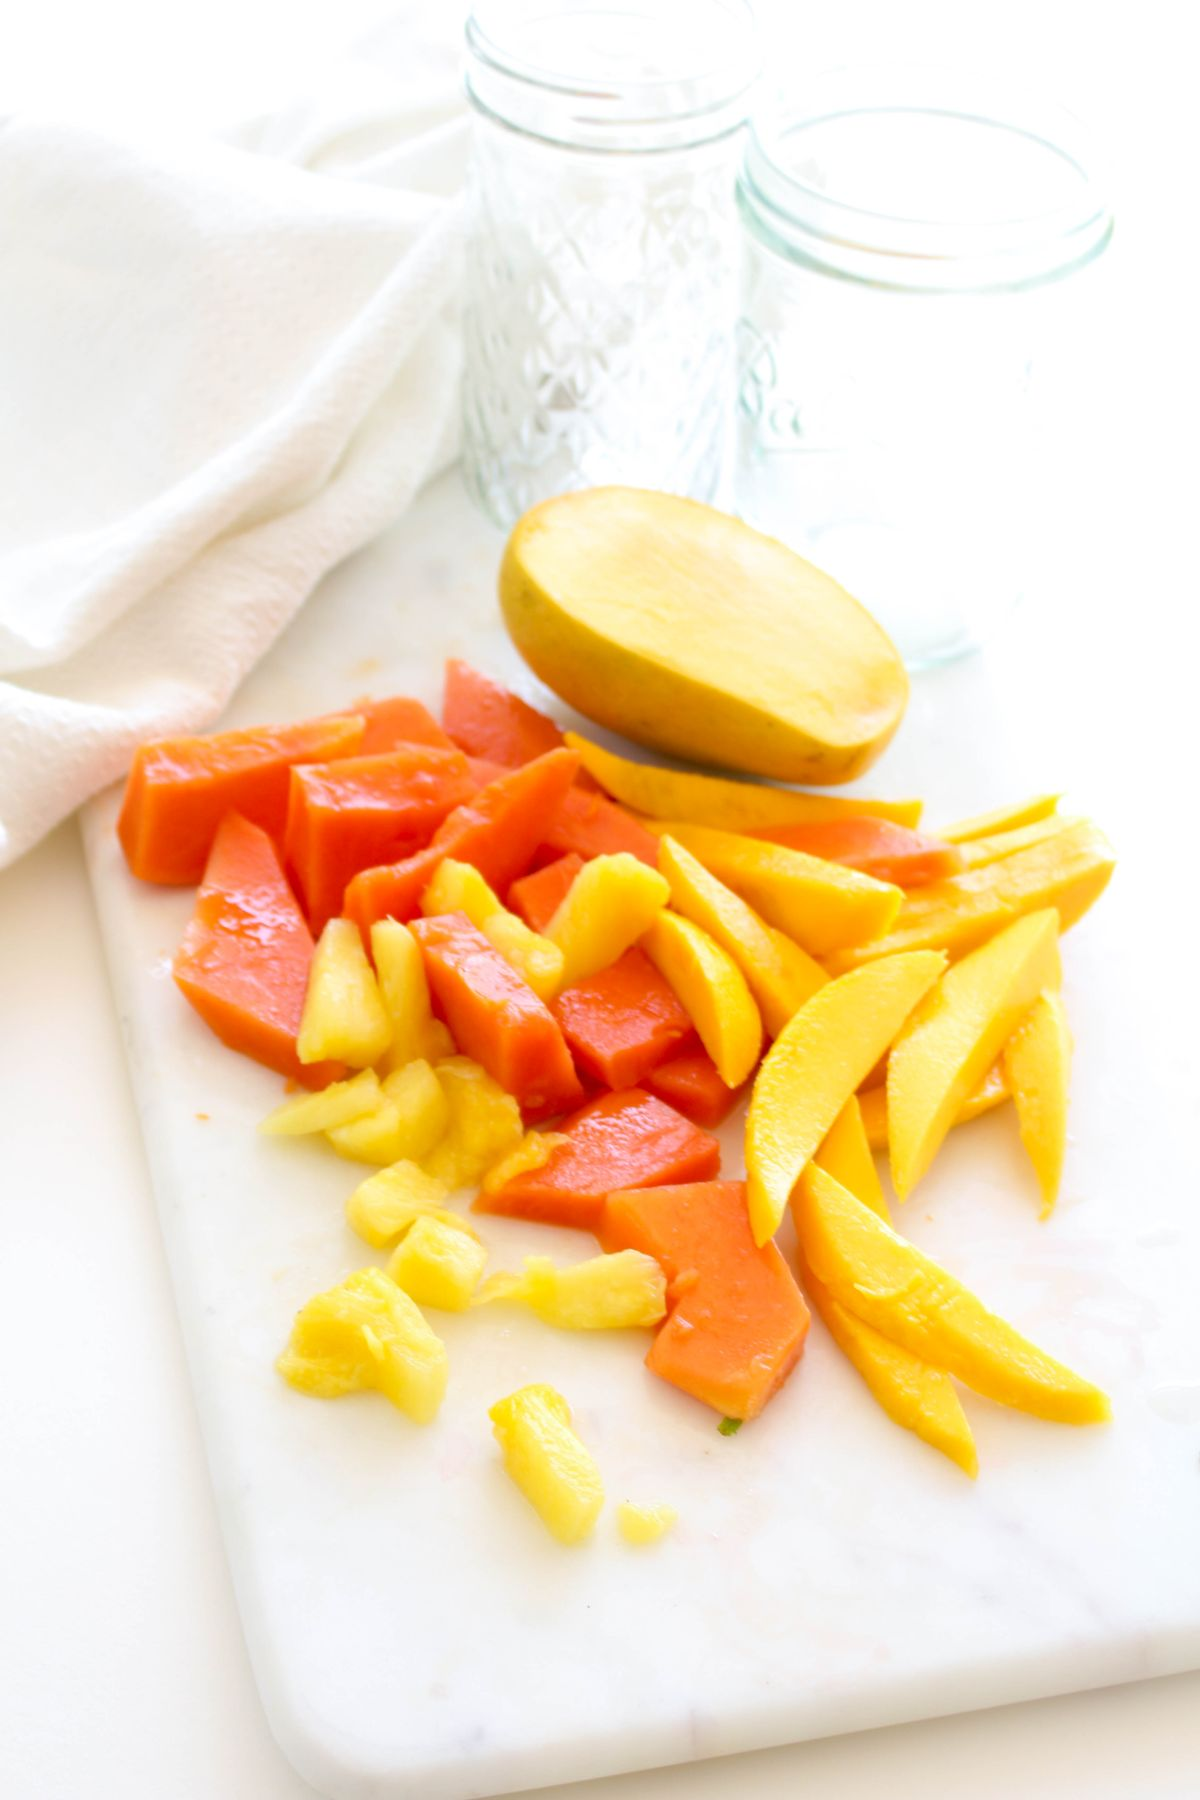 Chop the papaya mango and pineapple